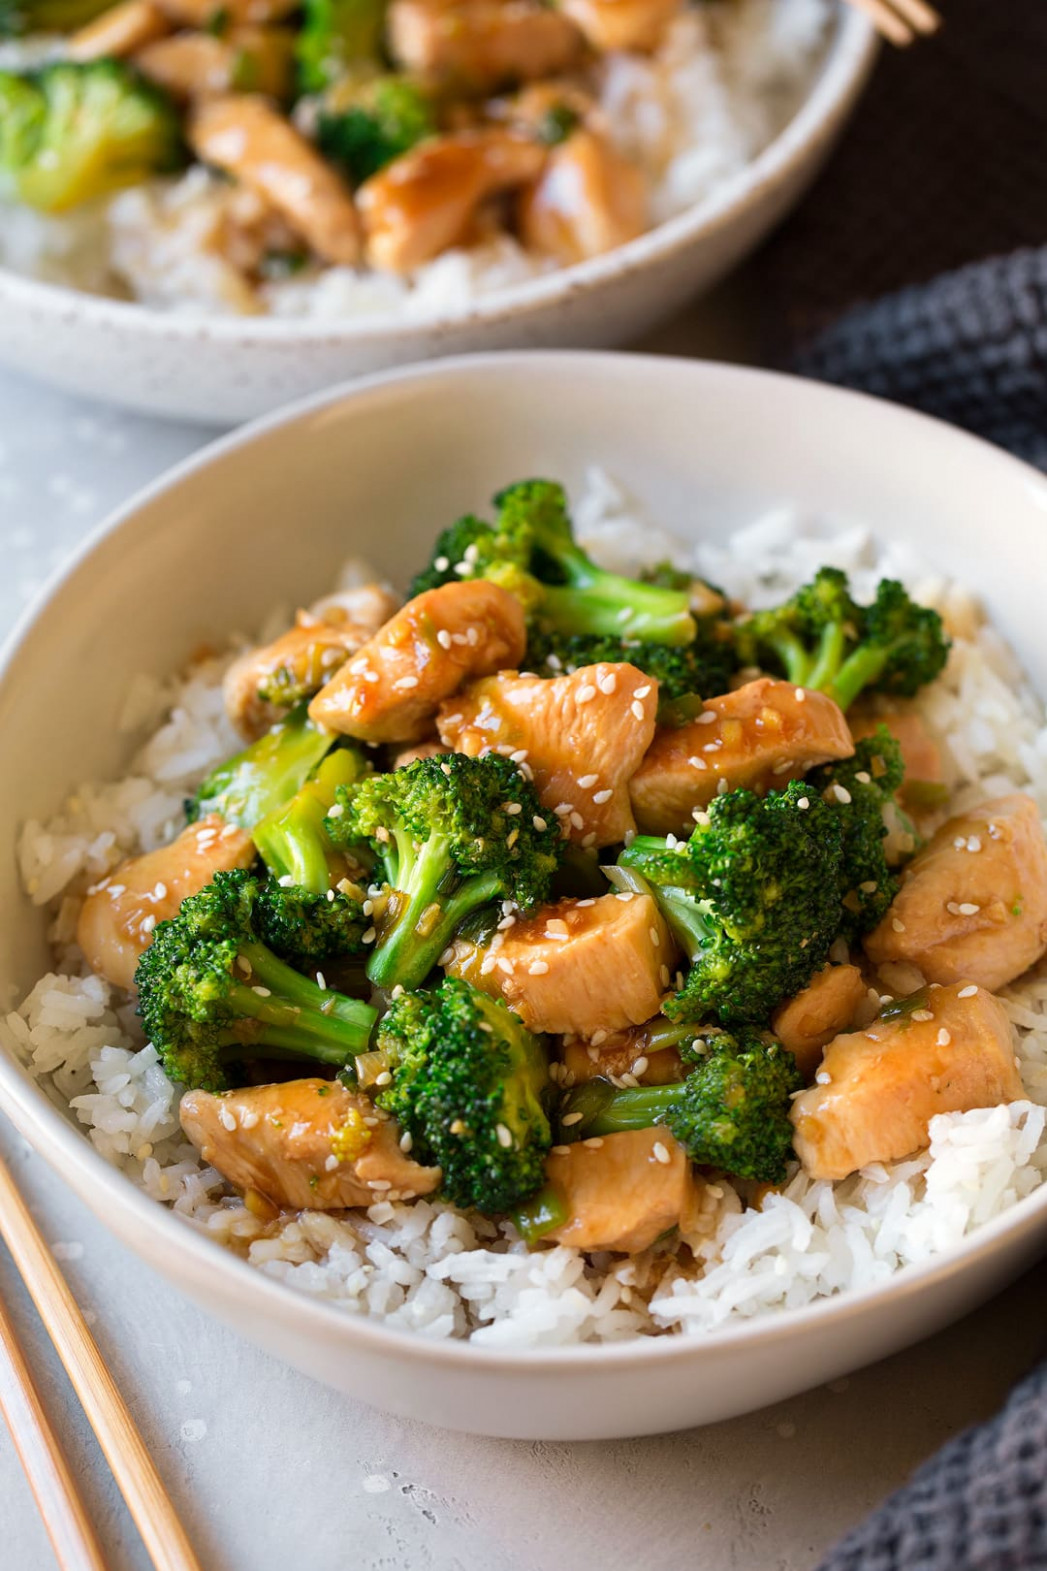 Chicken and Broccoli Stir Fry - stir fry recipes chicken